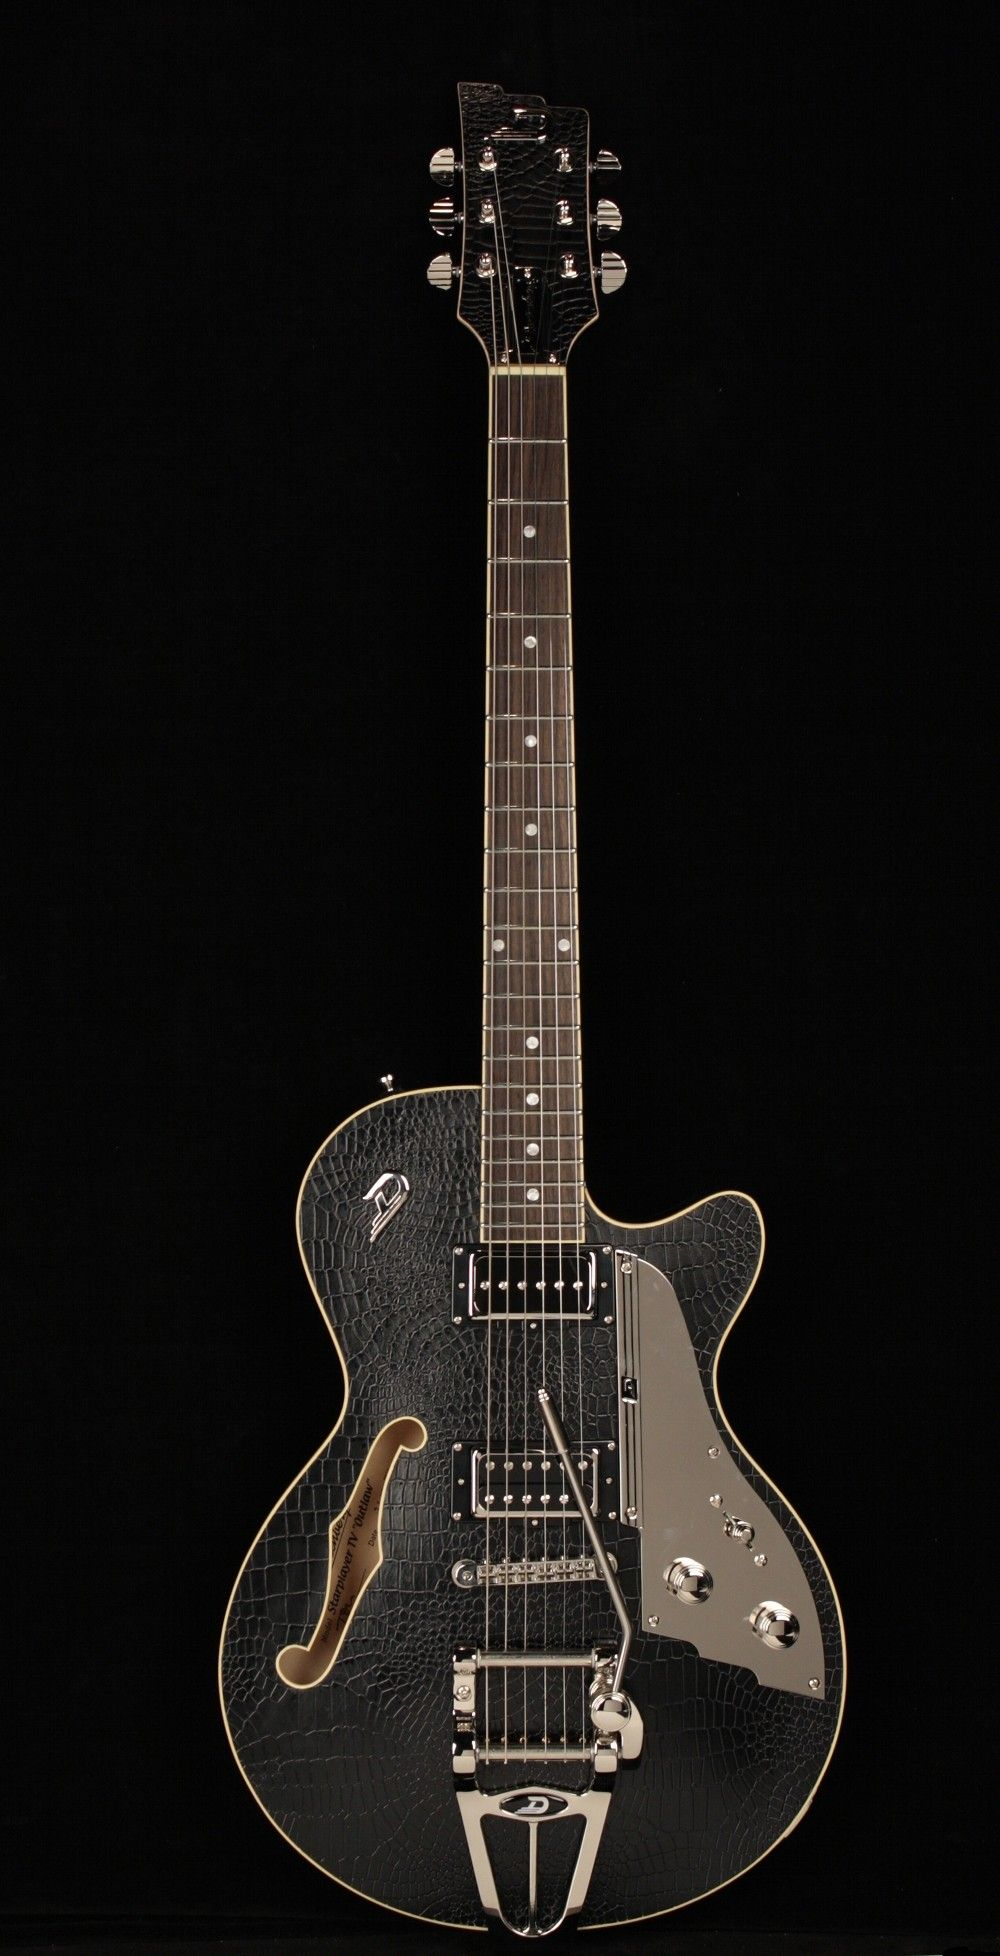 Yum Duesenberg I Guess This Is What Happens When You Cross A